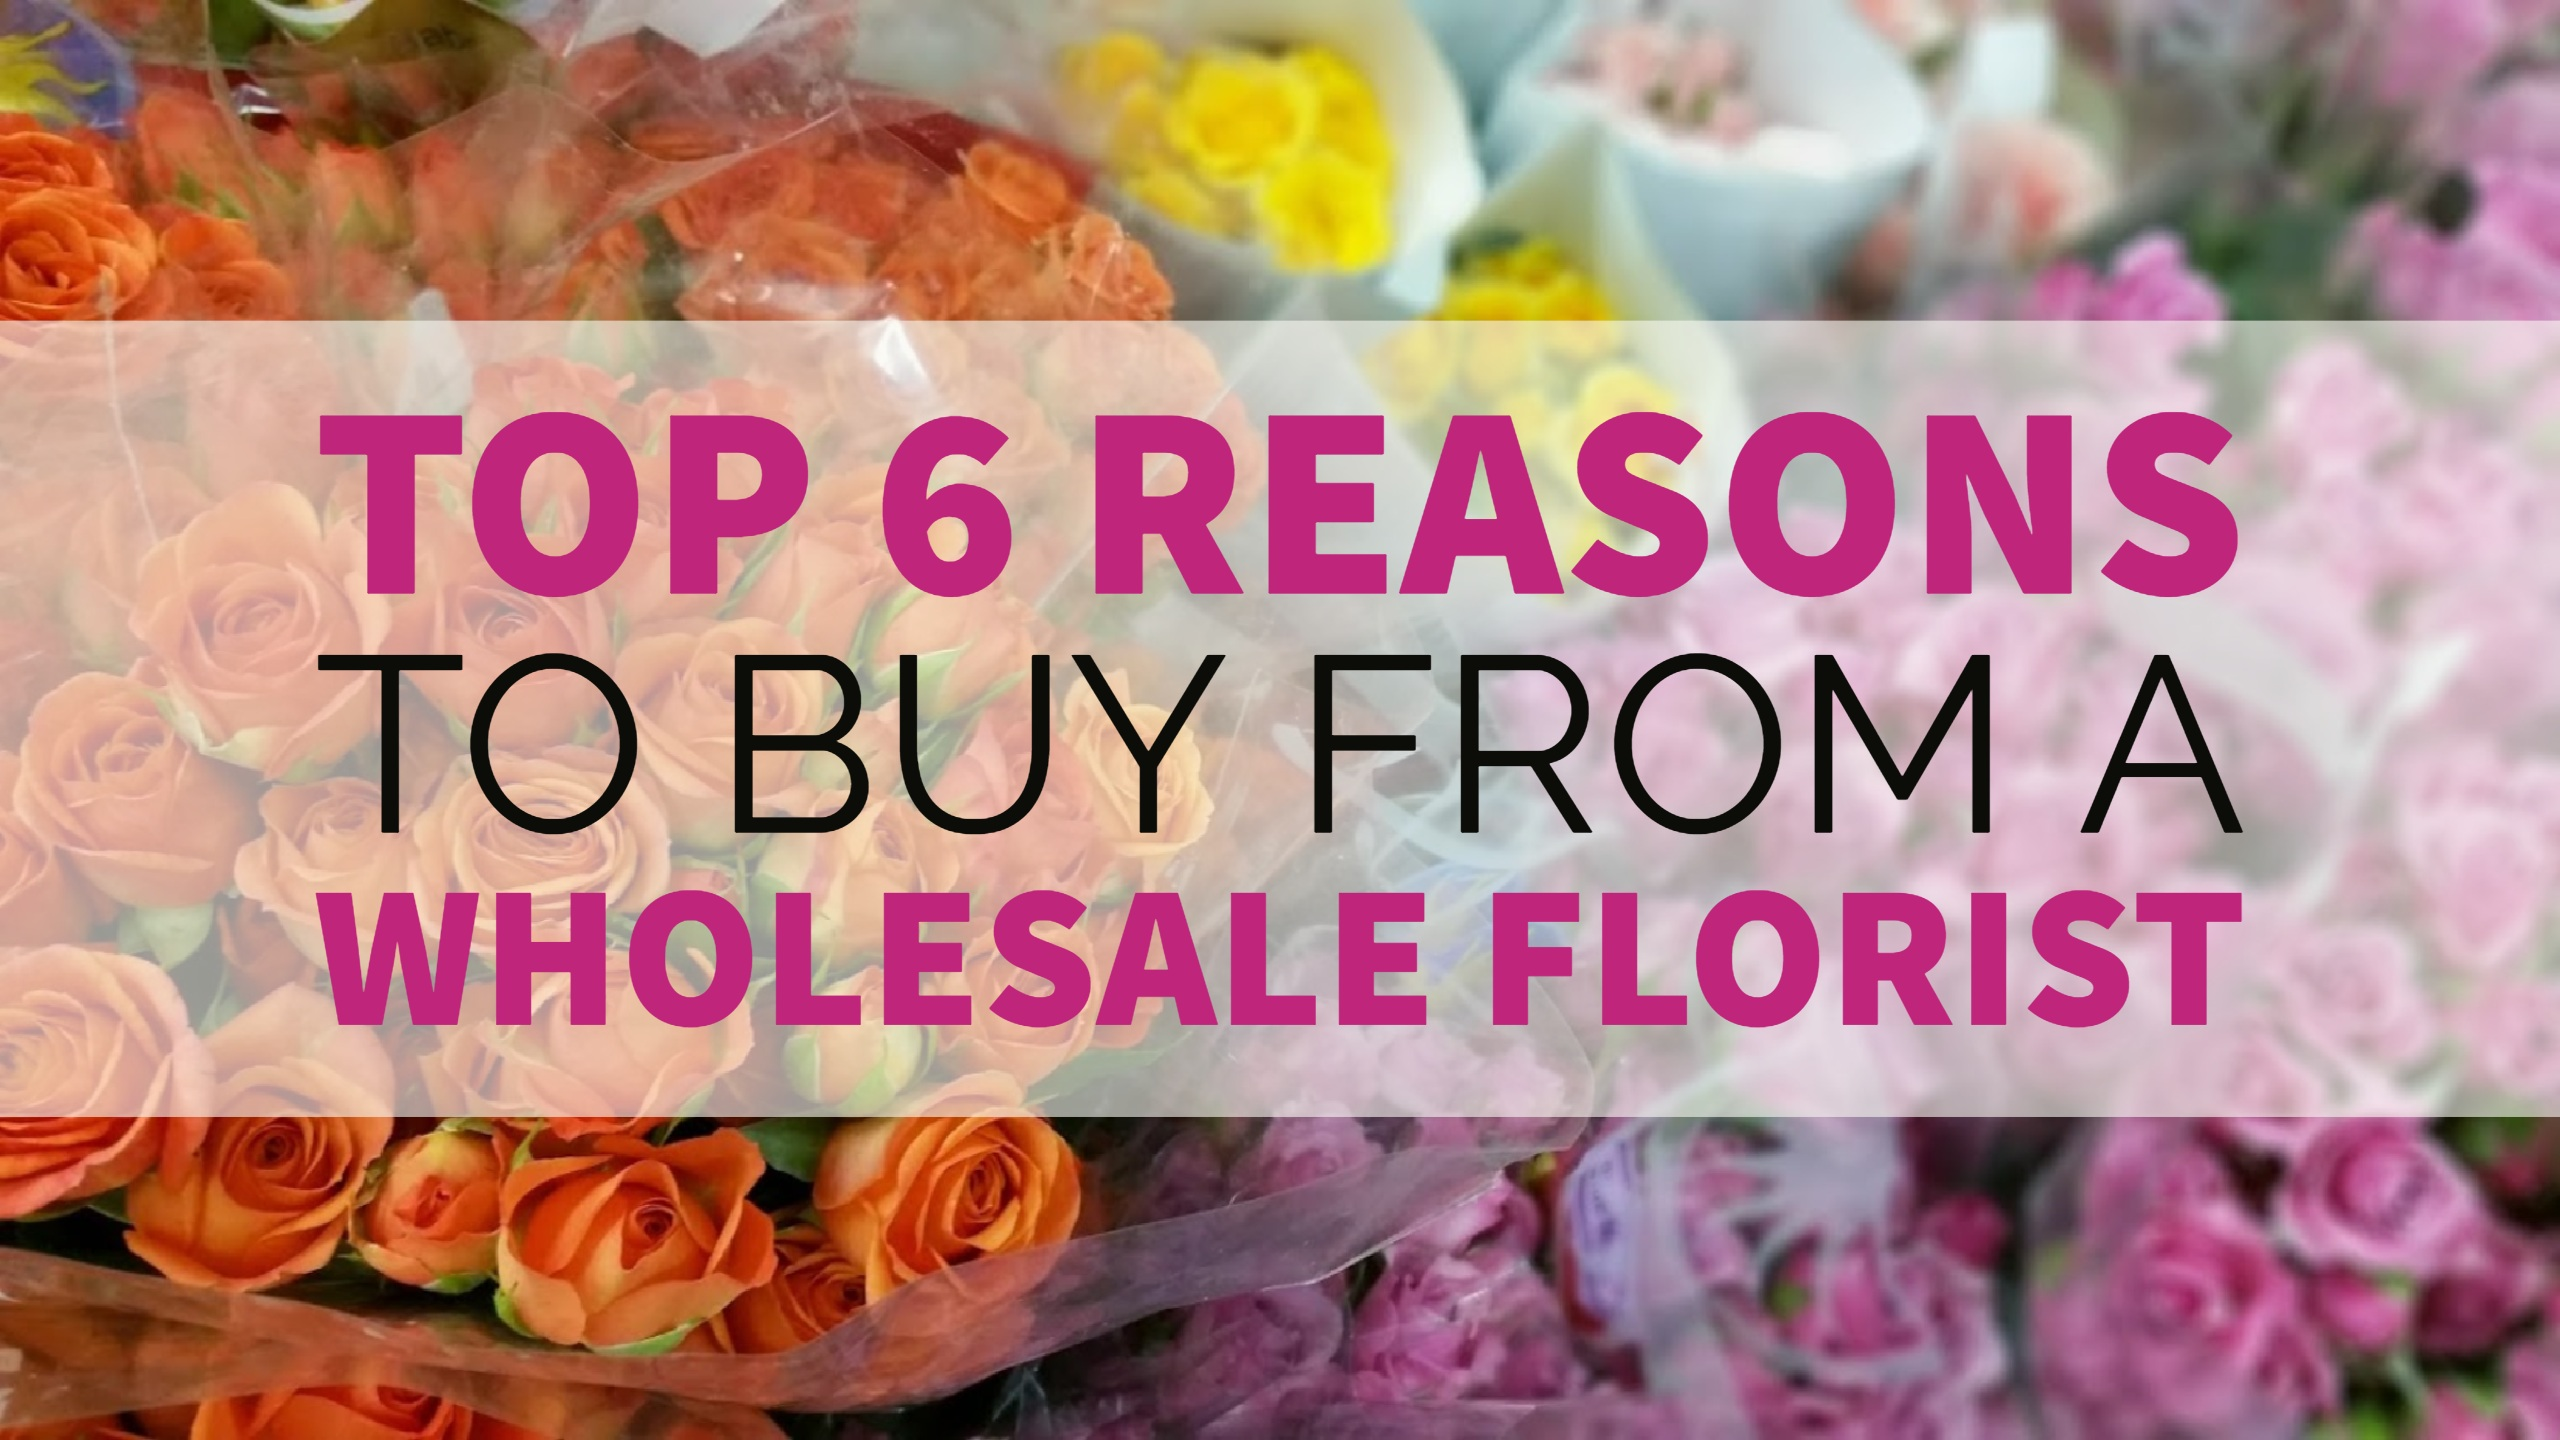 Top 6 Reasons to Buy from a Wholesale Florist | Dreisbach Wholesale ...